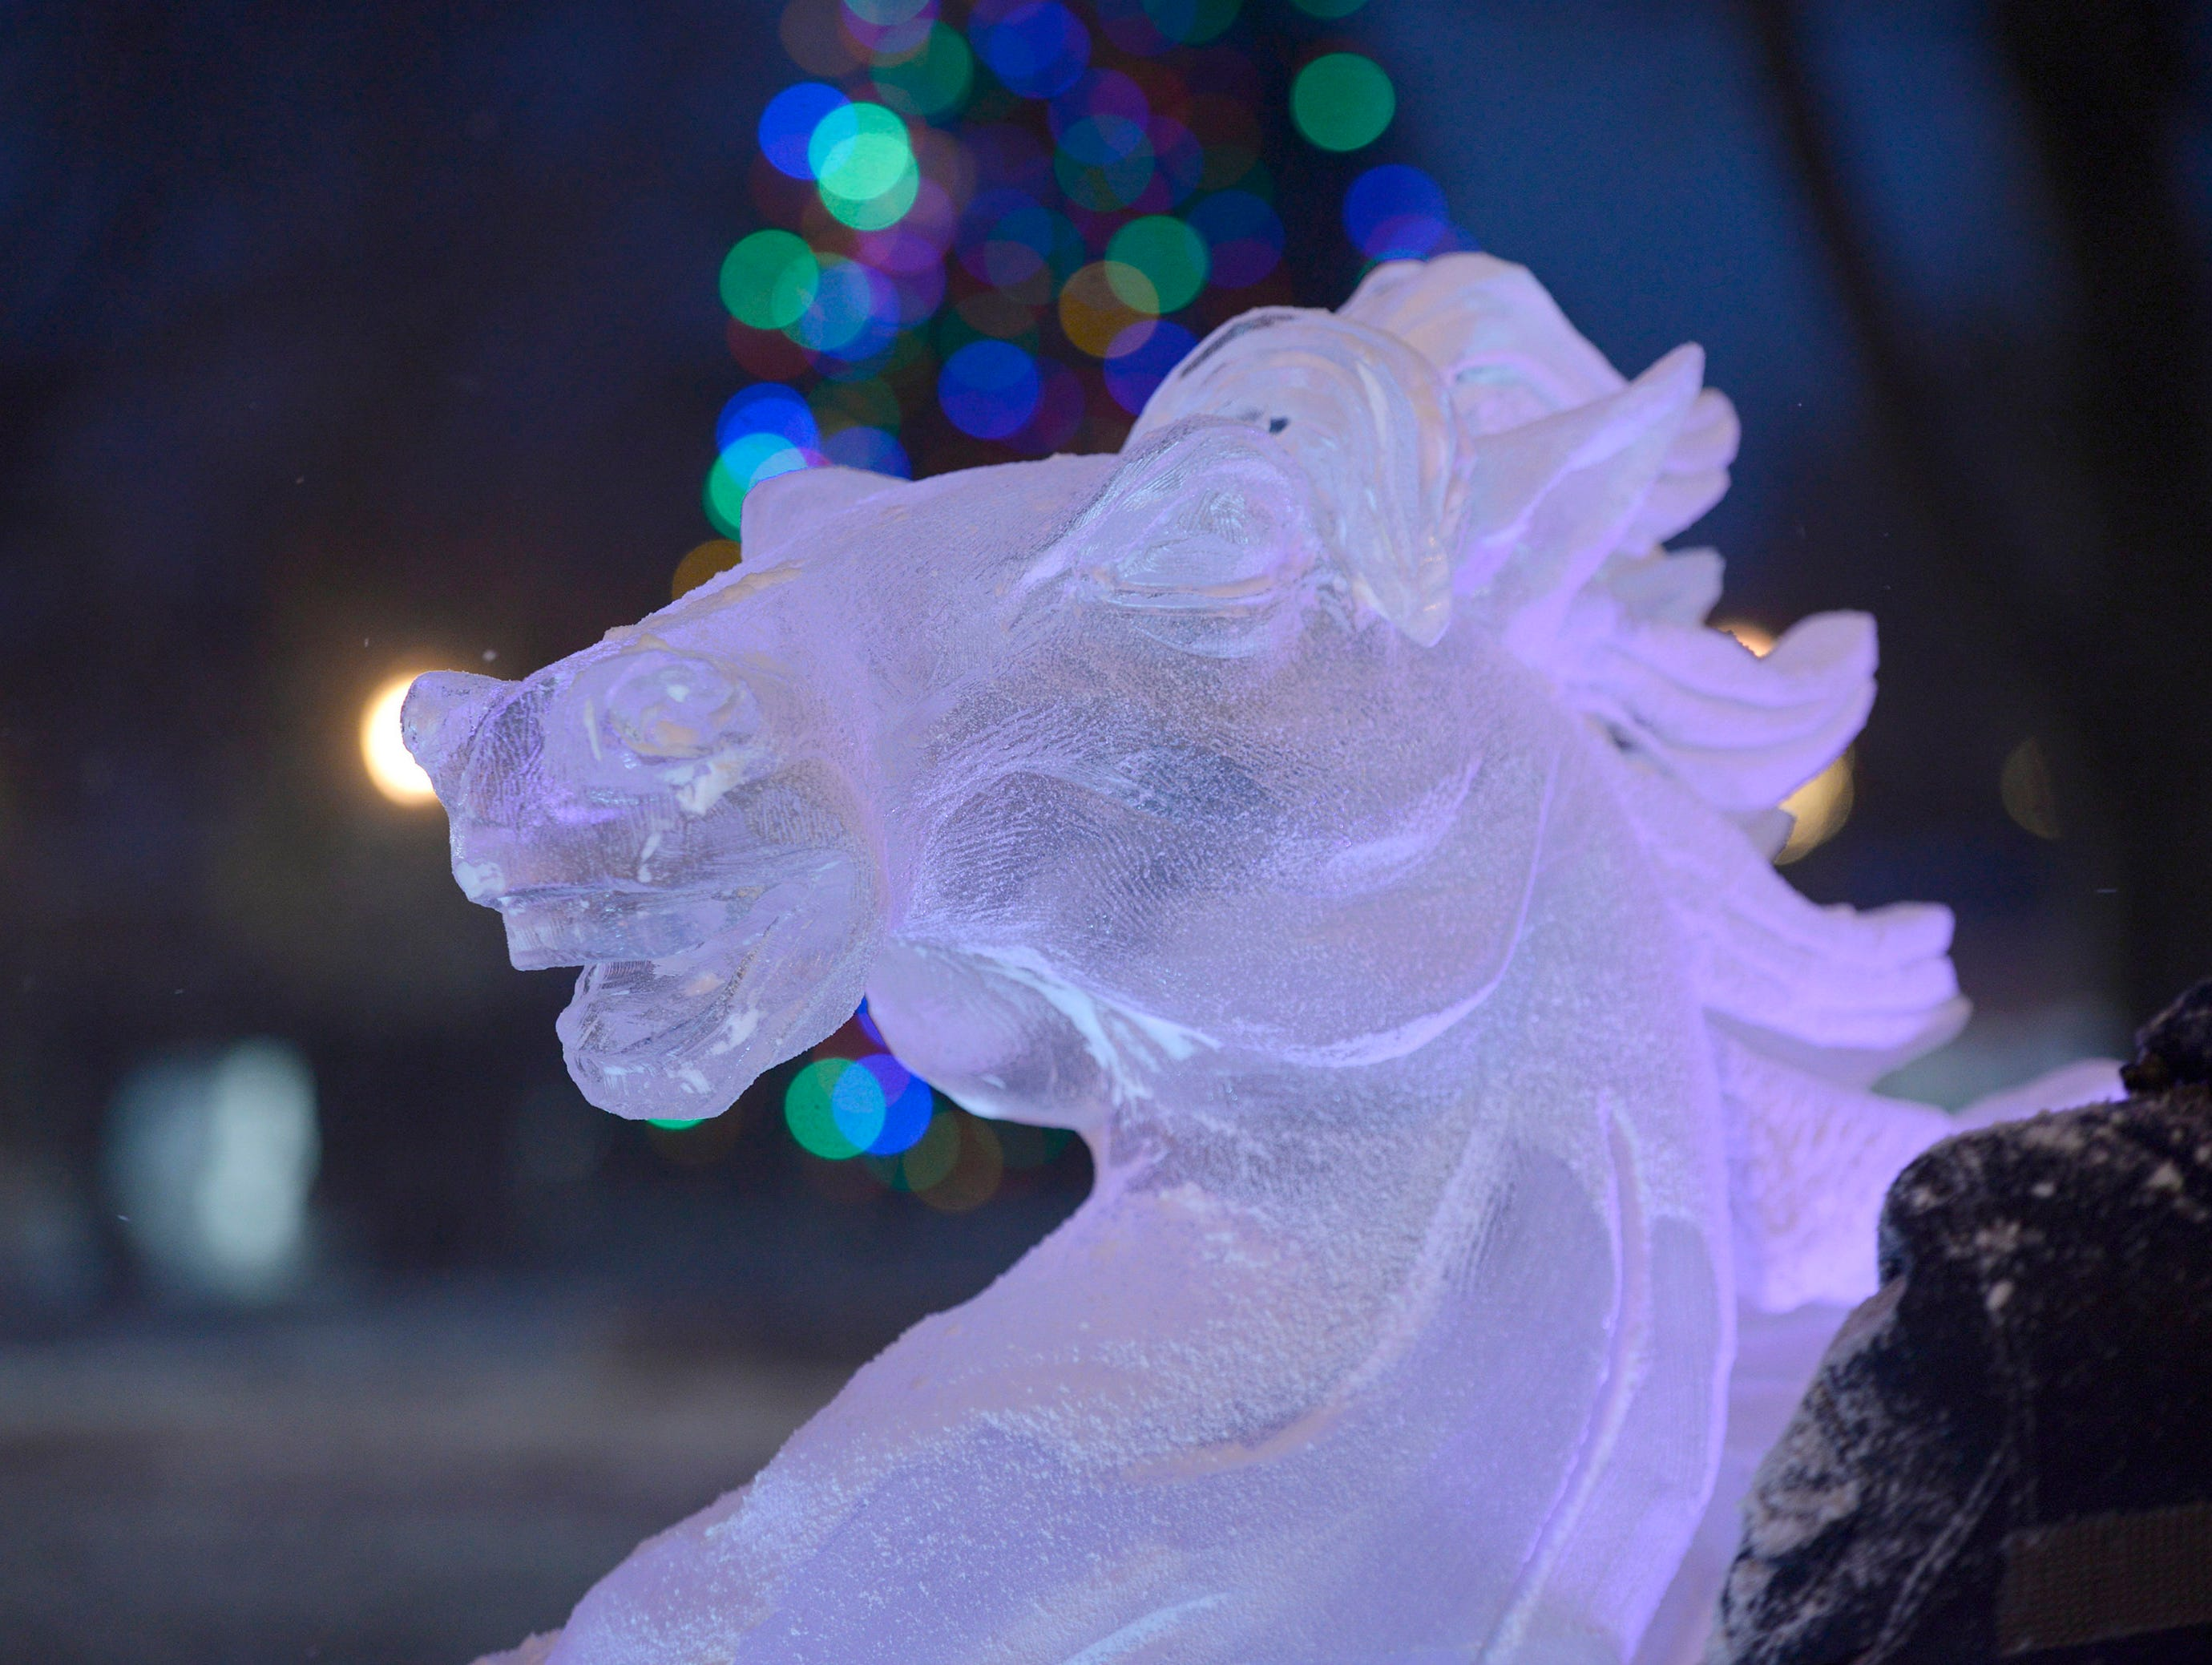 A carving is illuminated by the evening lights in Kellogg Park in downtown Plymouth.